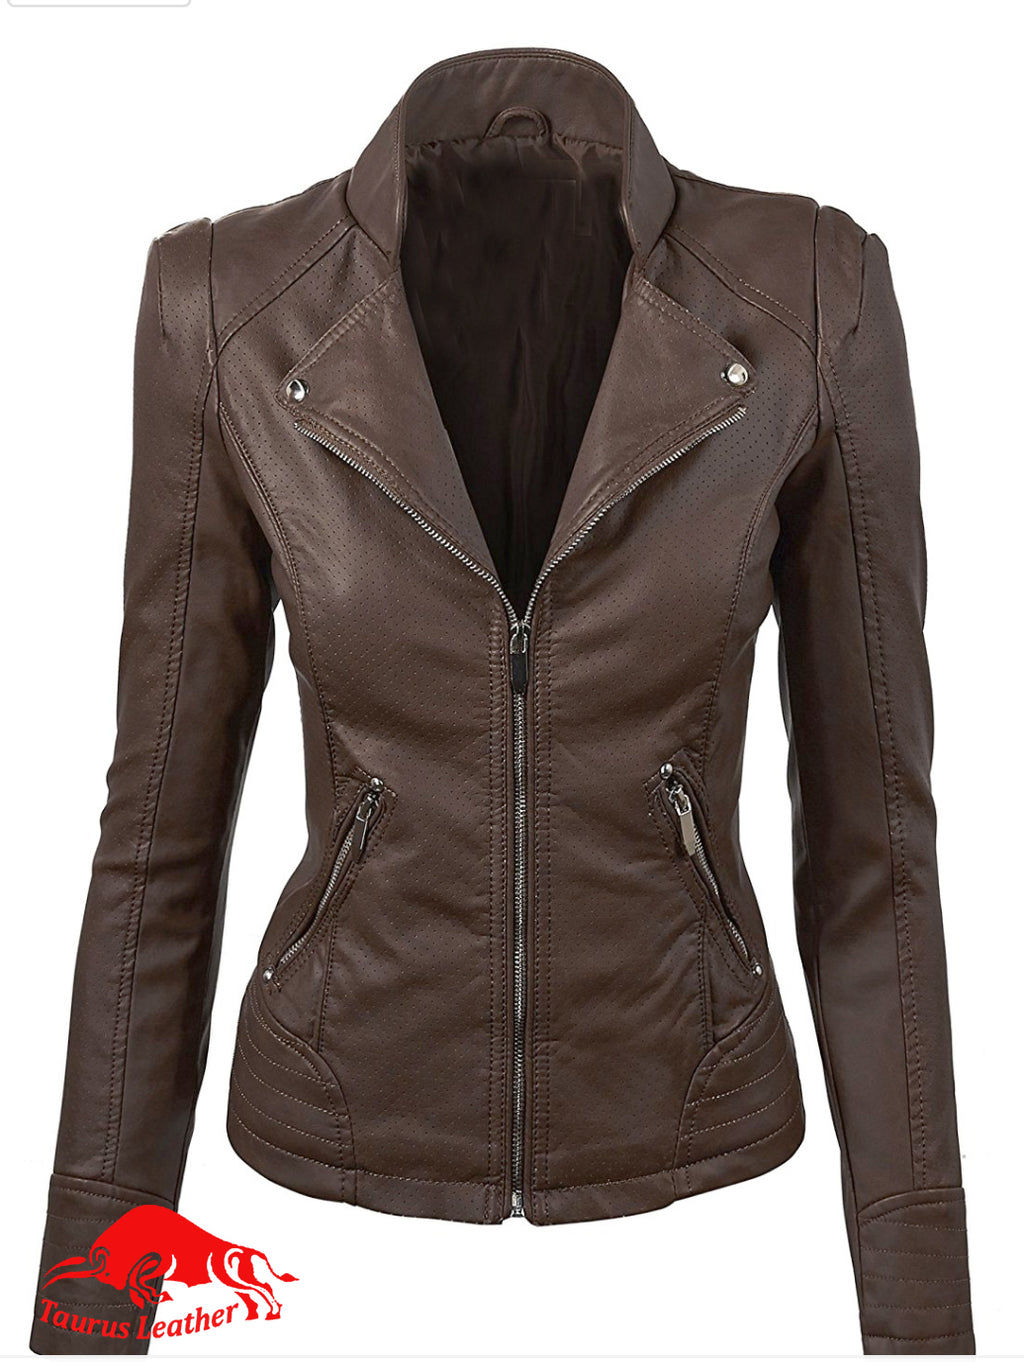 TAURUS LEATHER Dark Brown Sheep Leather Women's Jacket